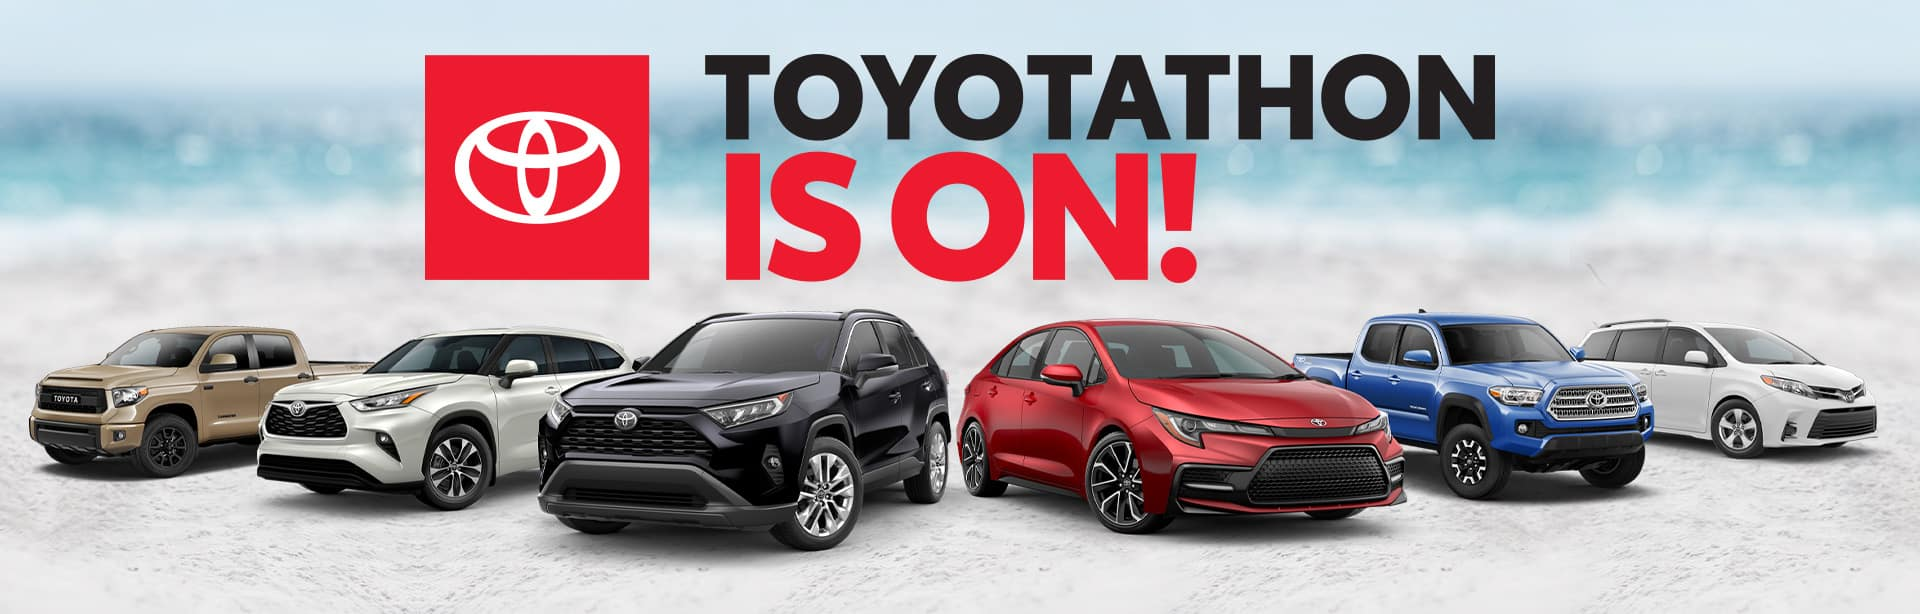 Toyotathon is ON at Toyota of Fort Walton Beach!